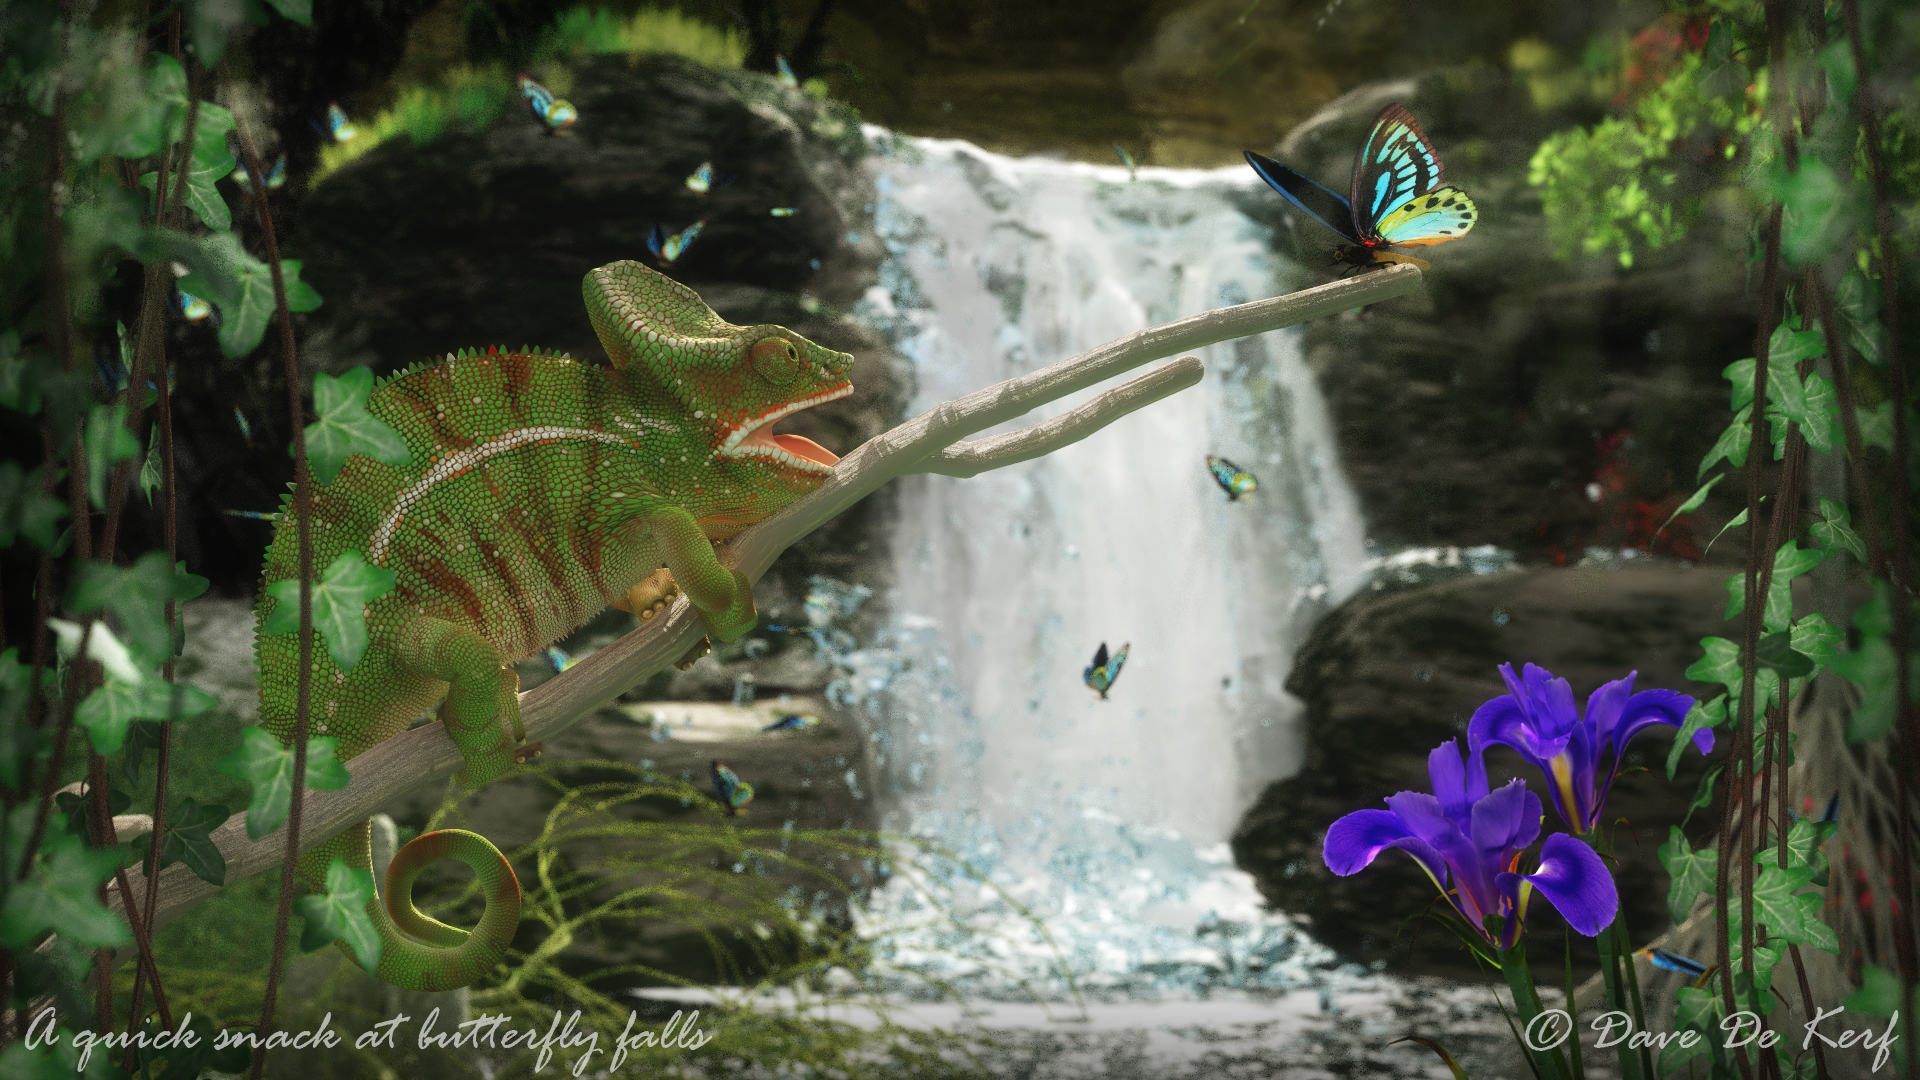 A quick snack at butterfly falls